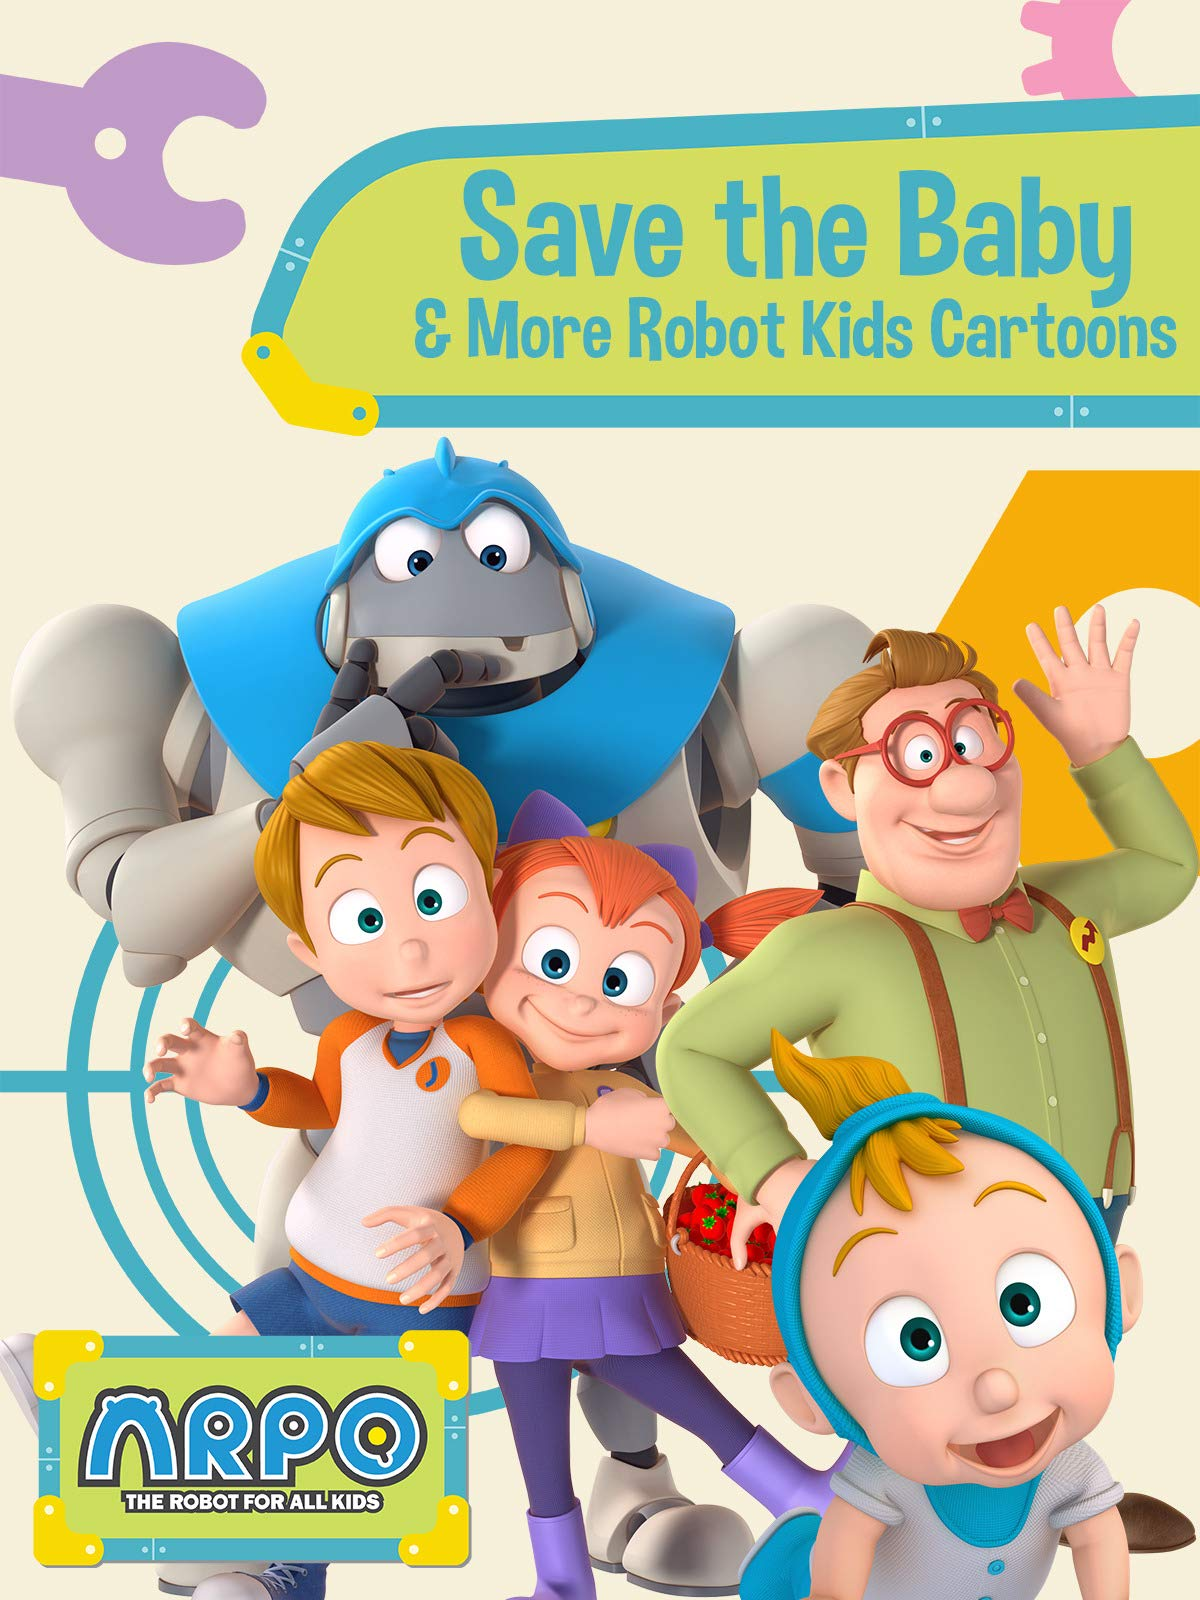 Arpo the Robot for All Kids - Save the Baby & More Robot Kids Cartoon